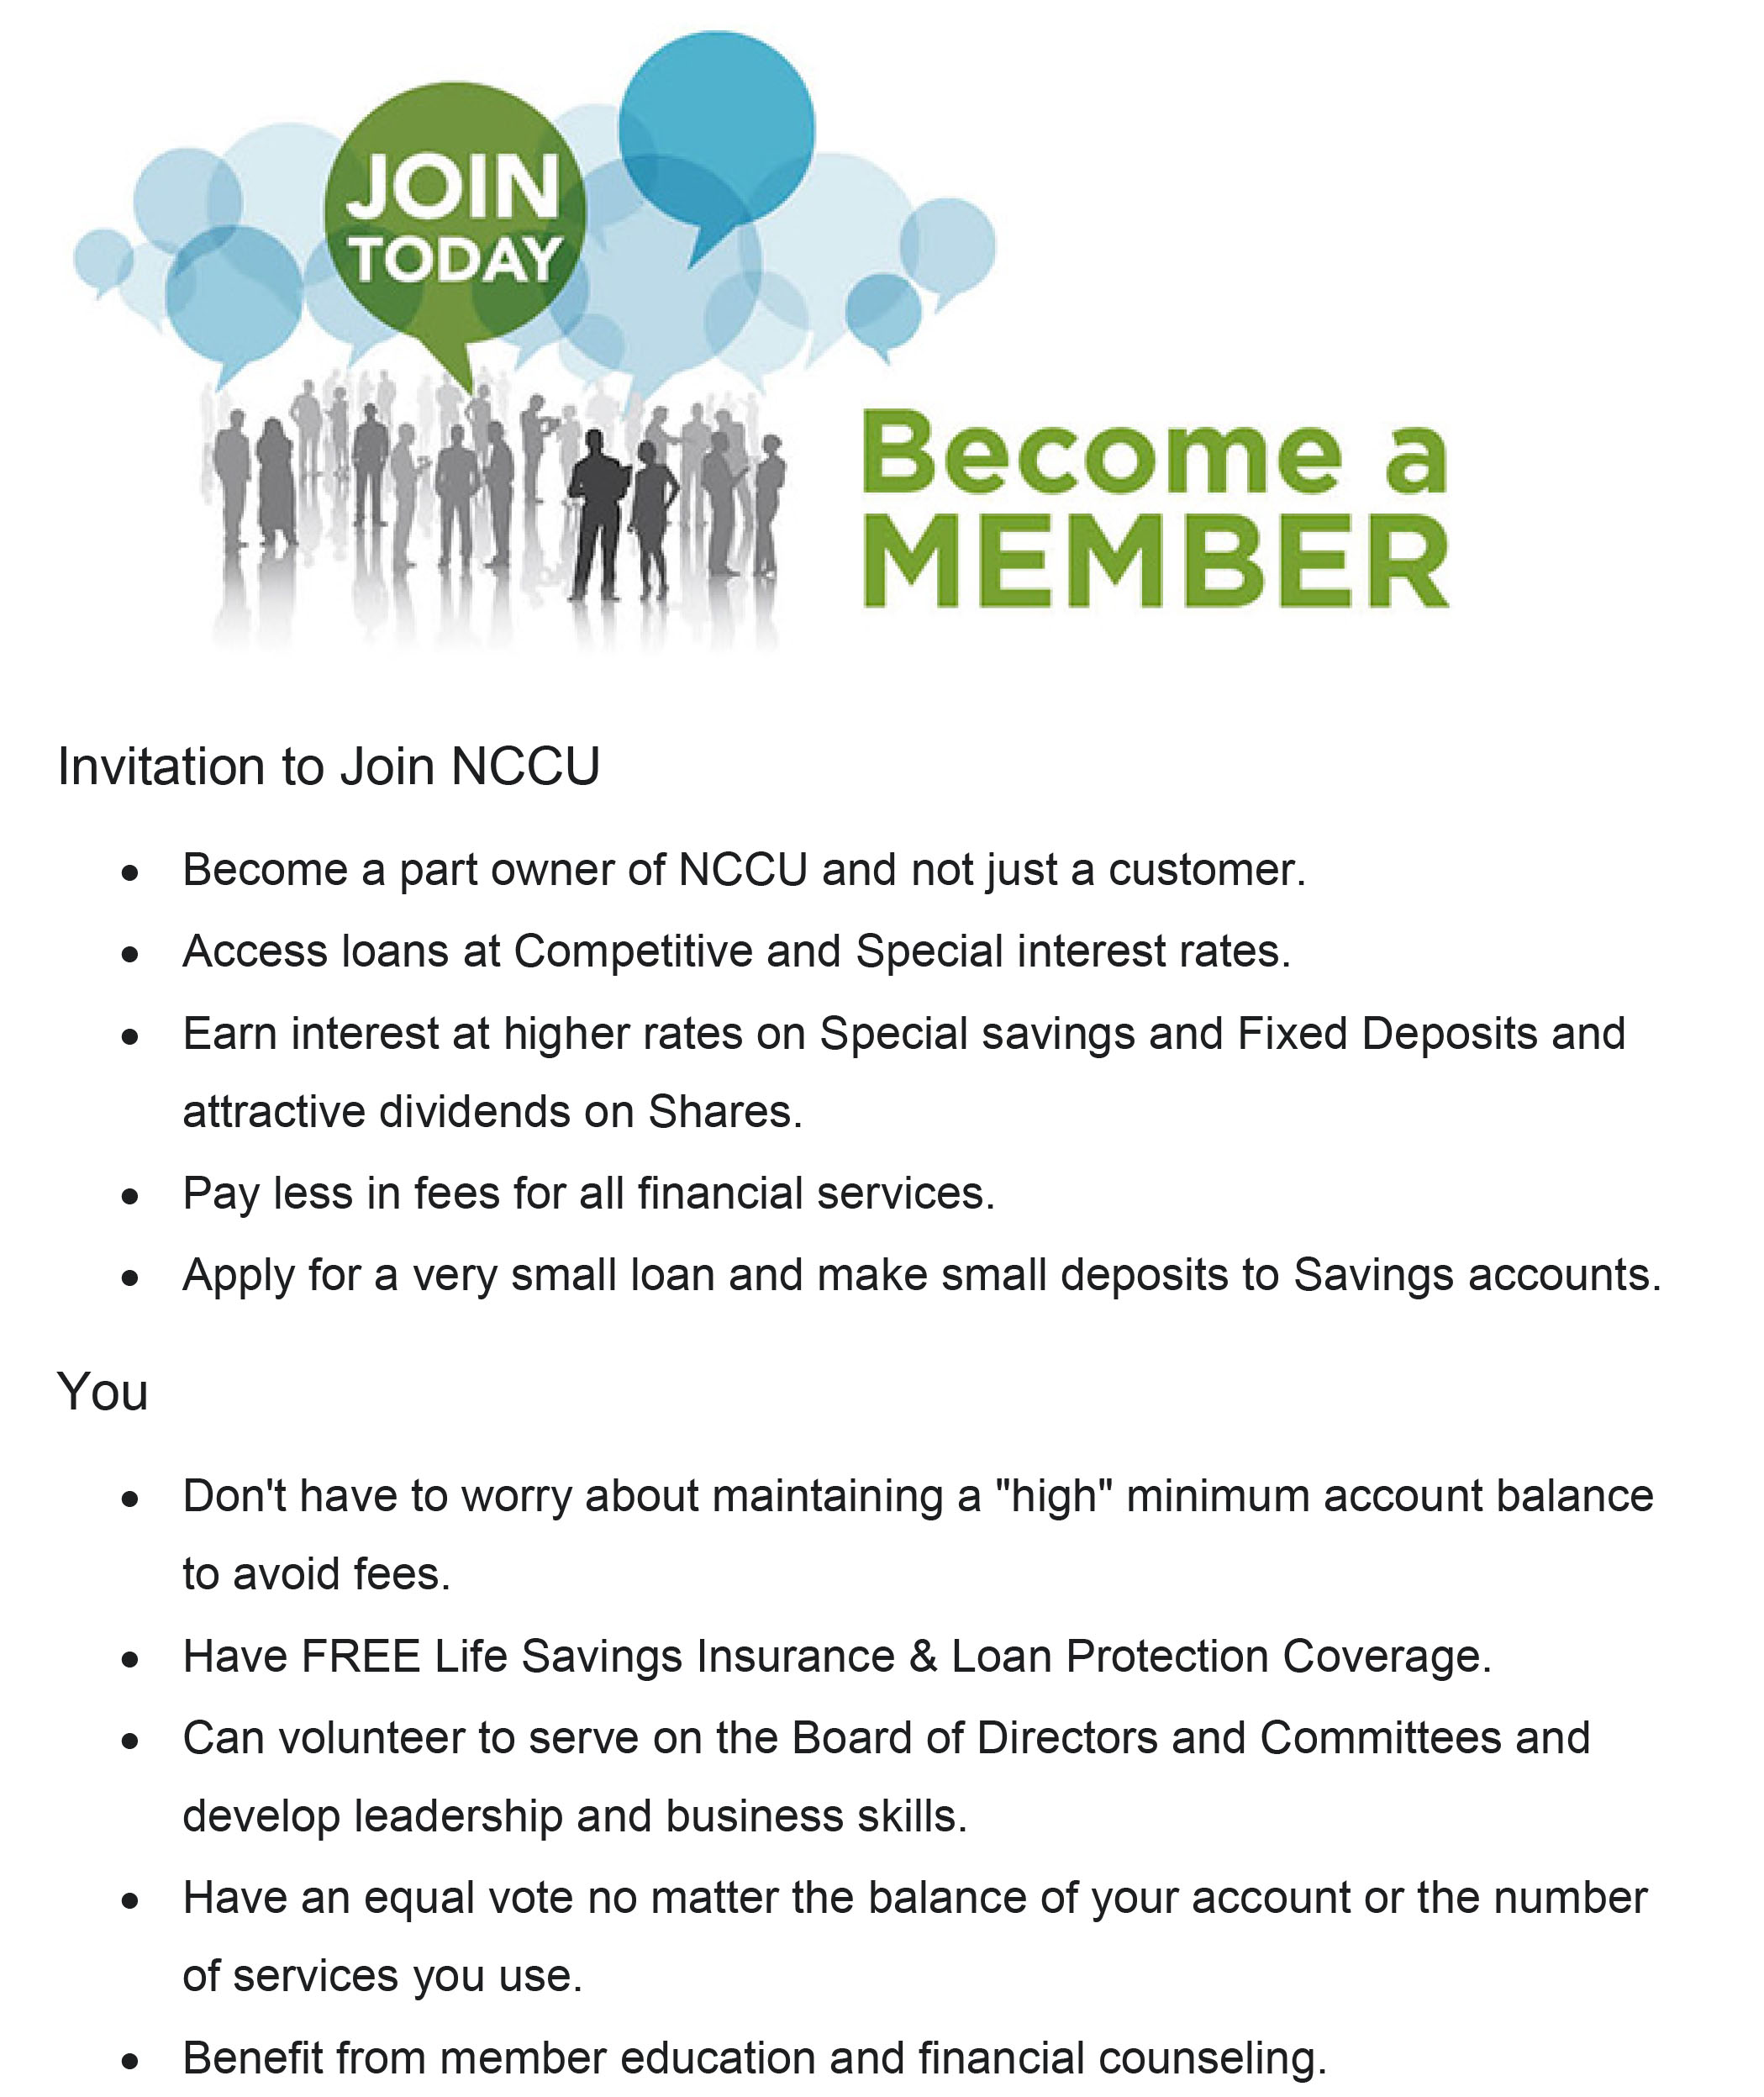 invitation_to_join_nccu3.jpg